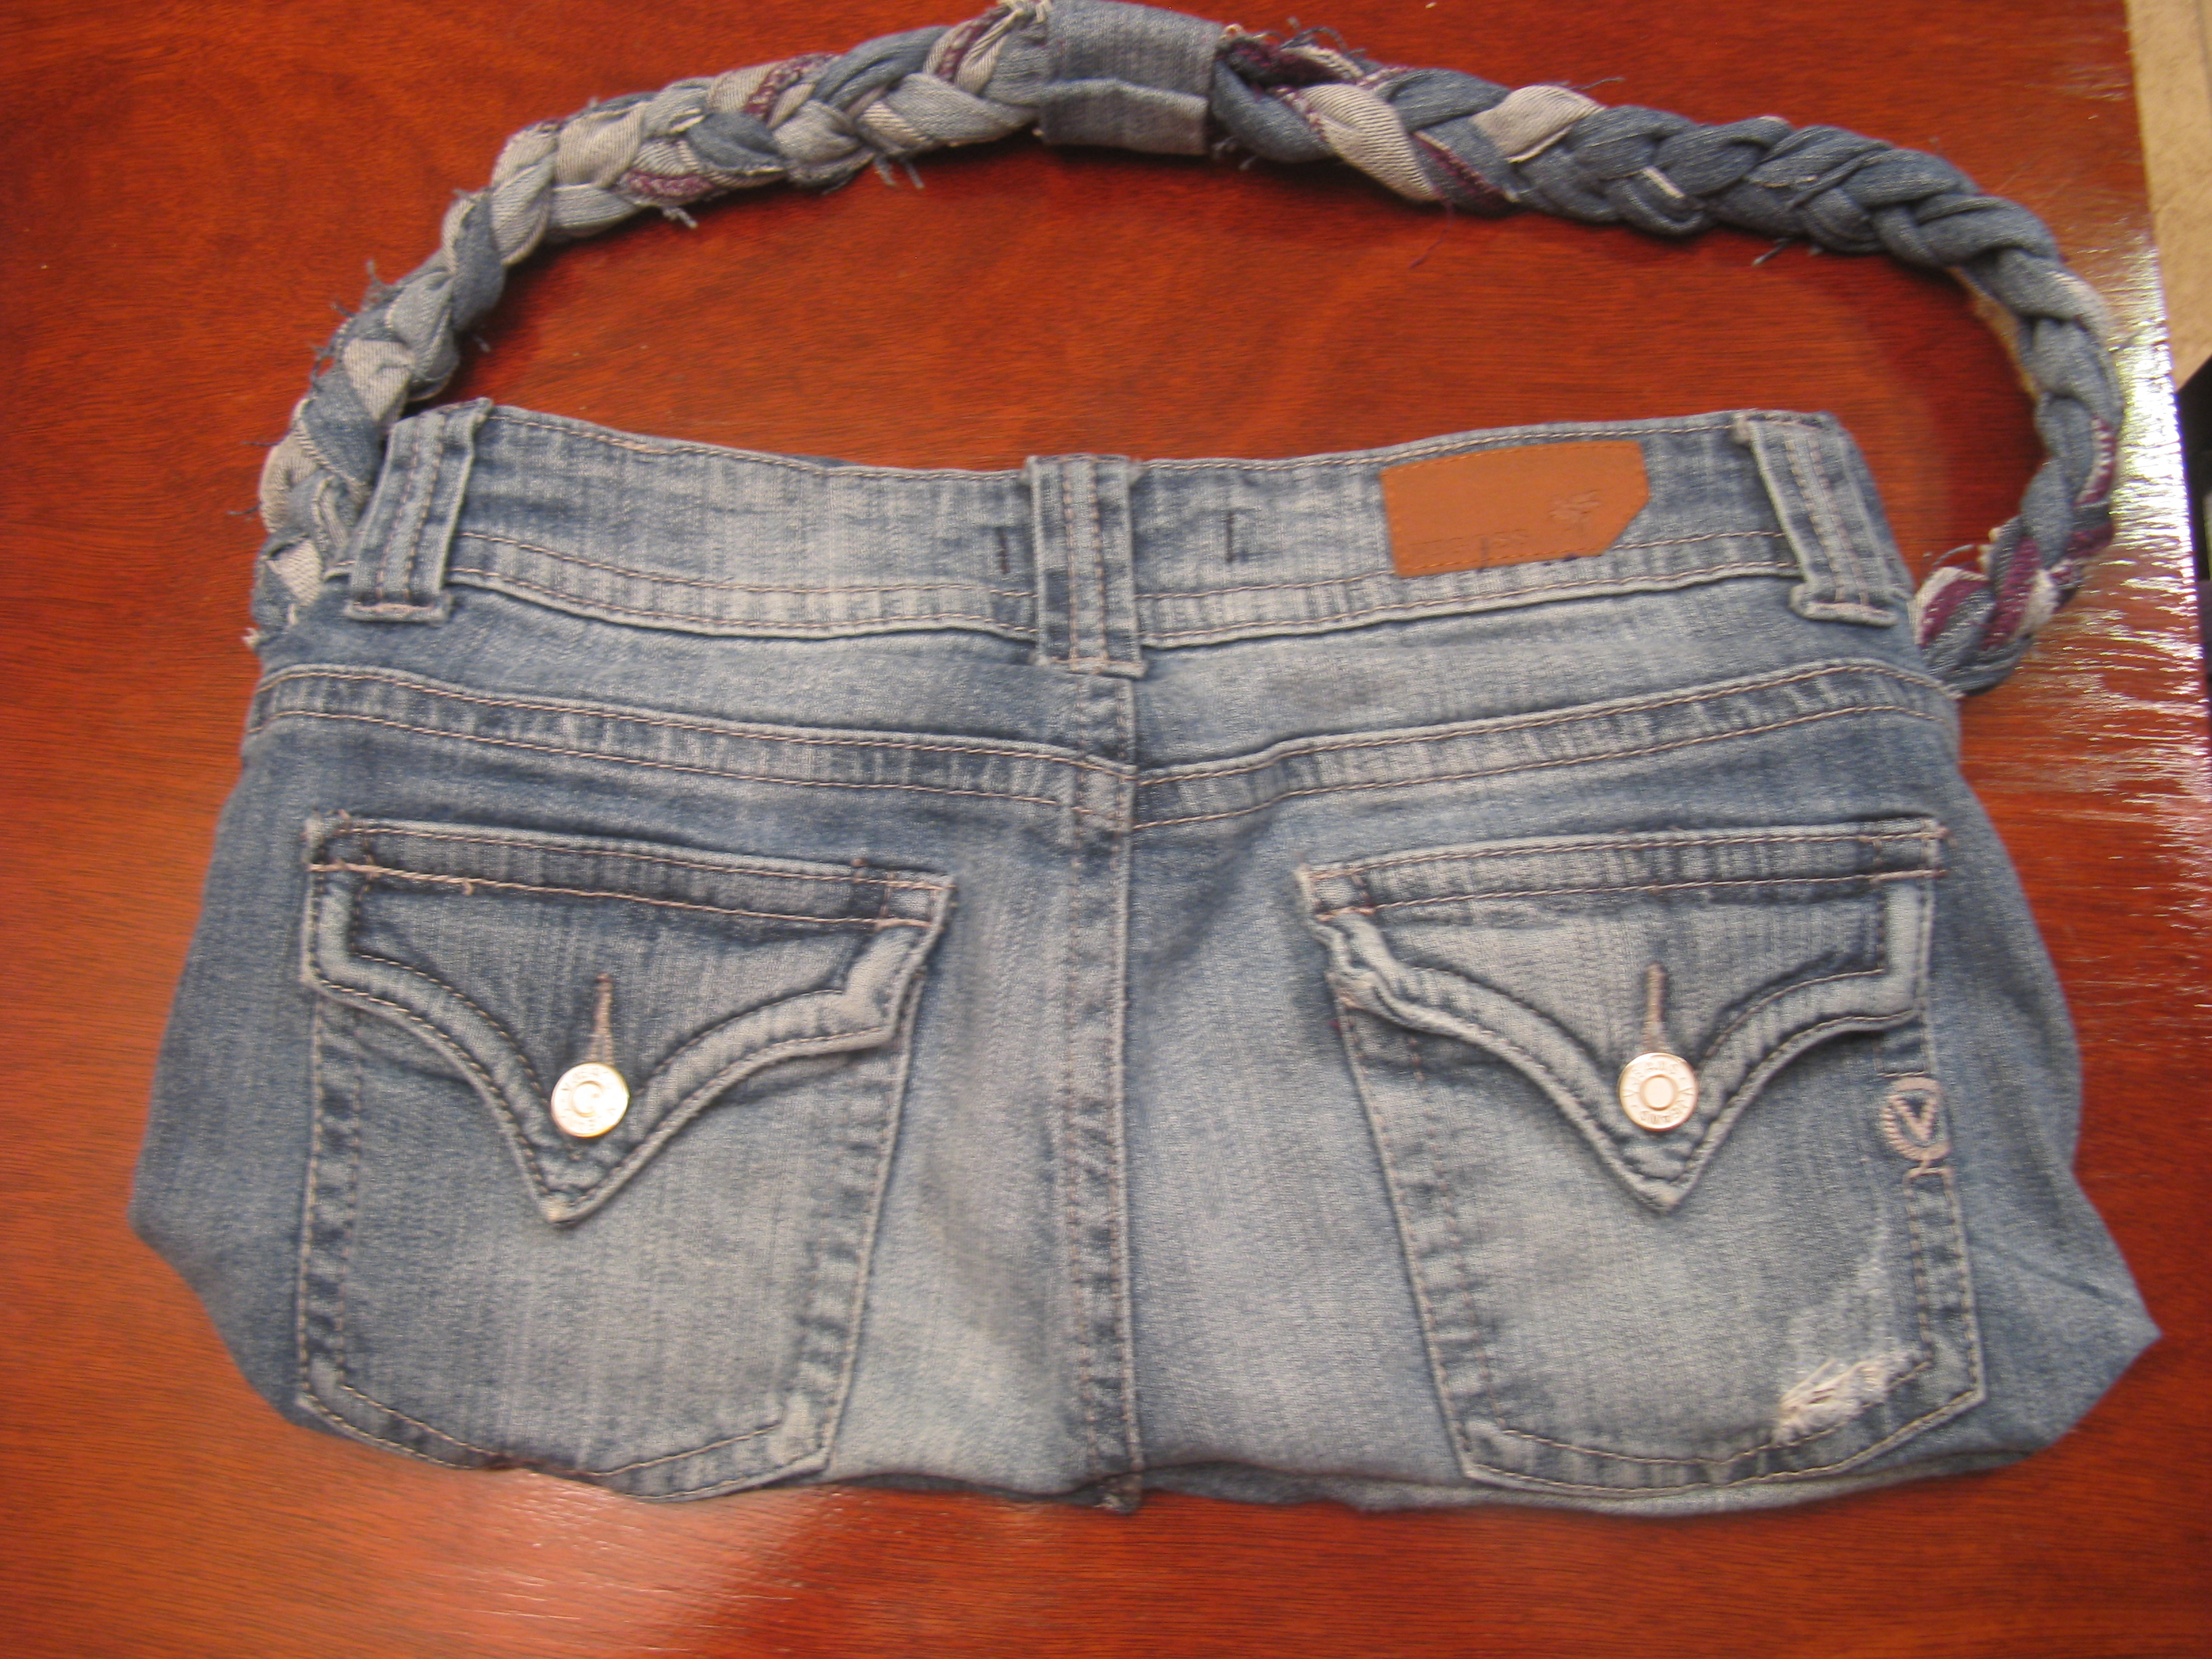 Old Jeans = New Denim Purse | veggiegirlanw